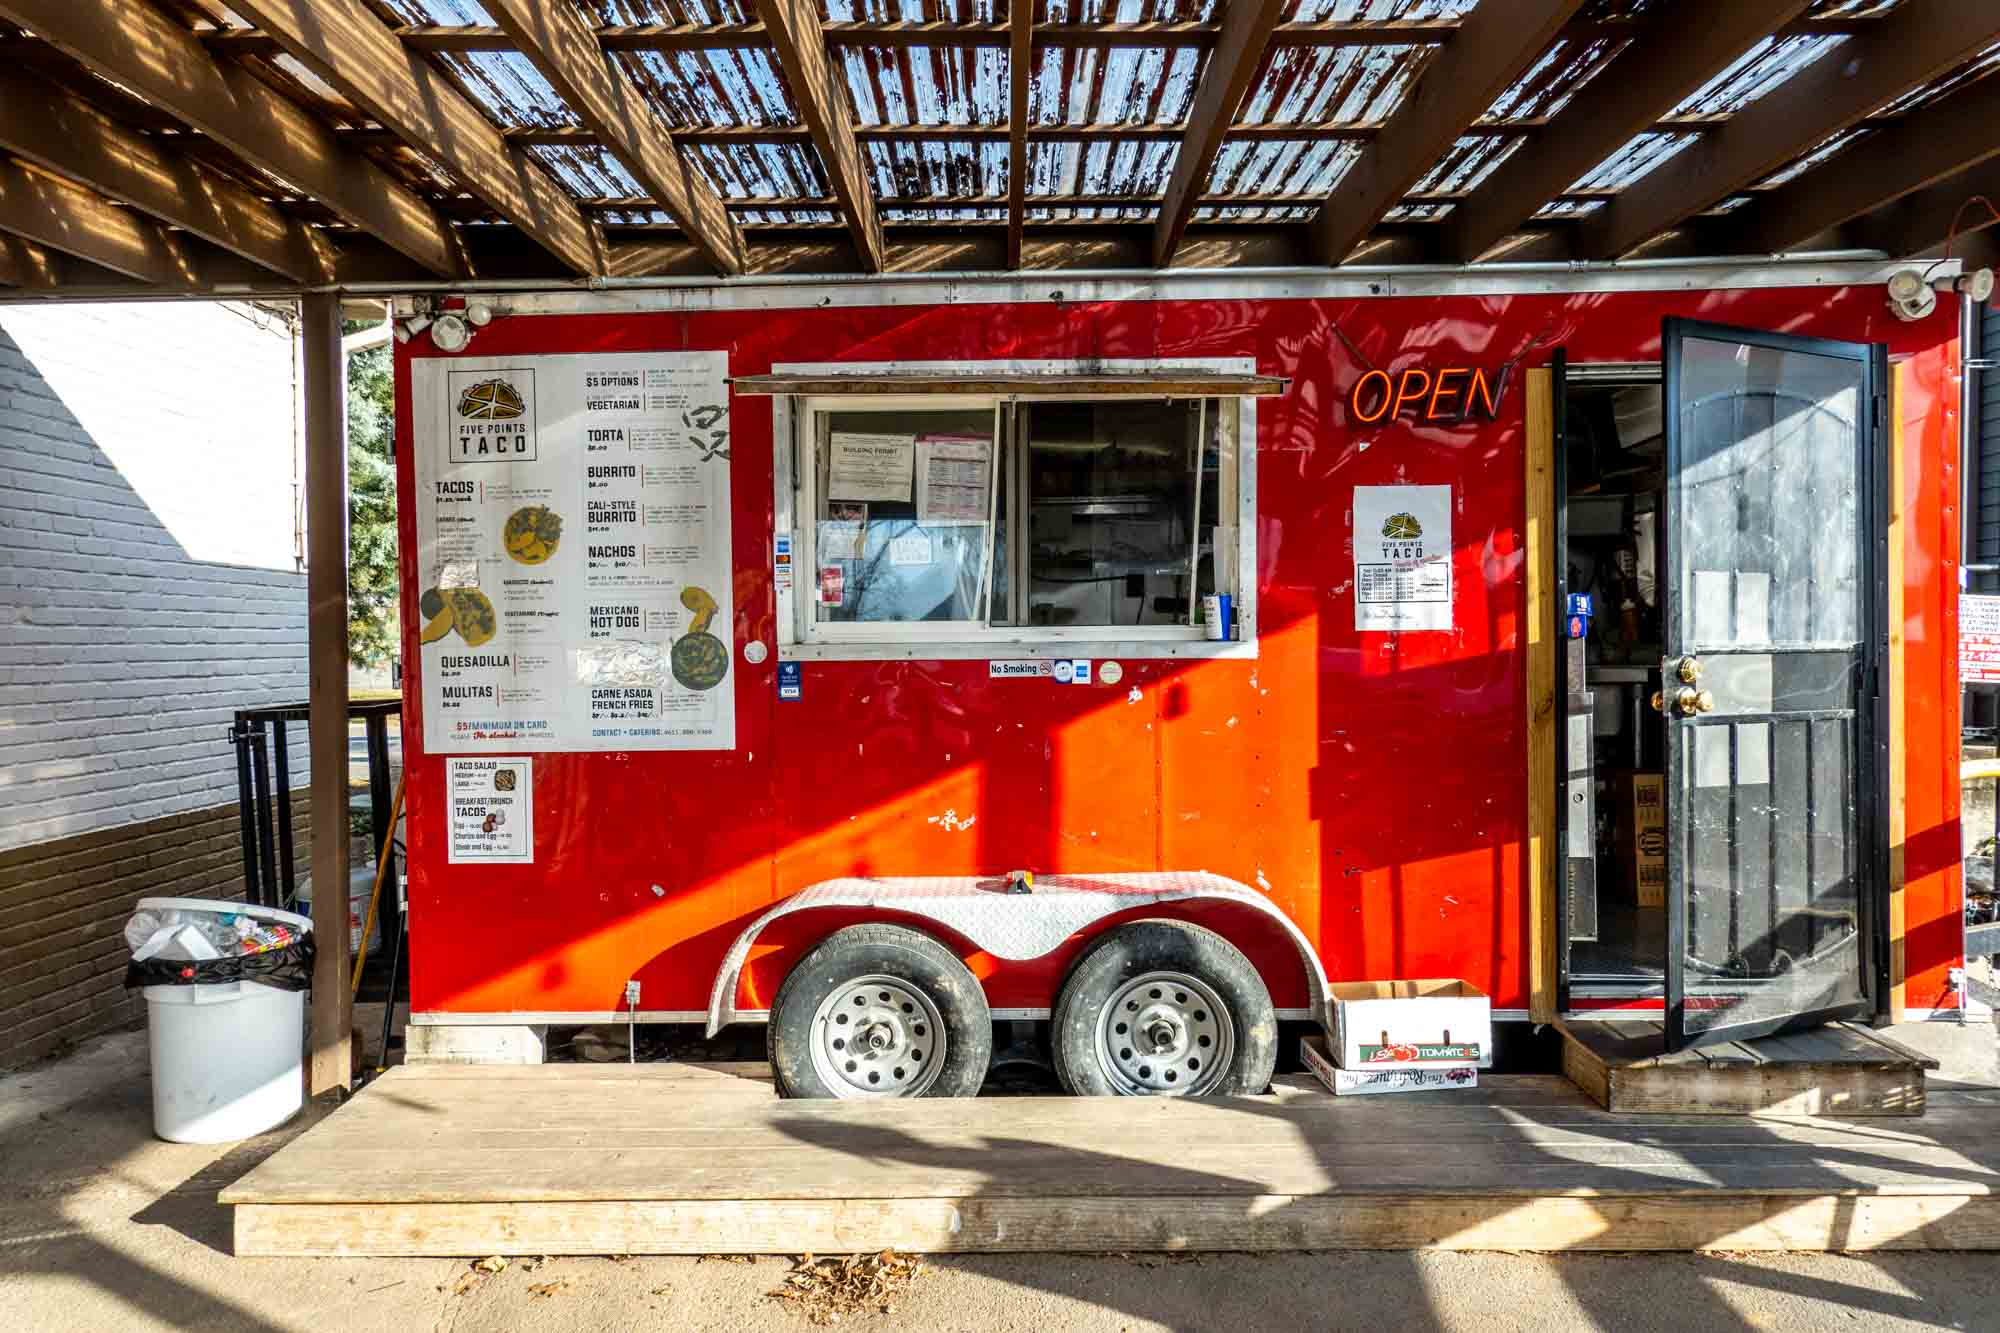 Red food truck with a menu on its side